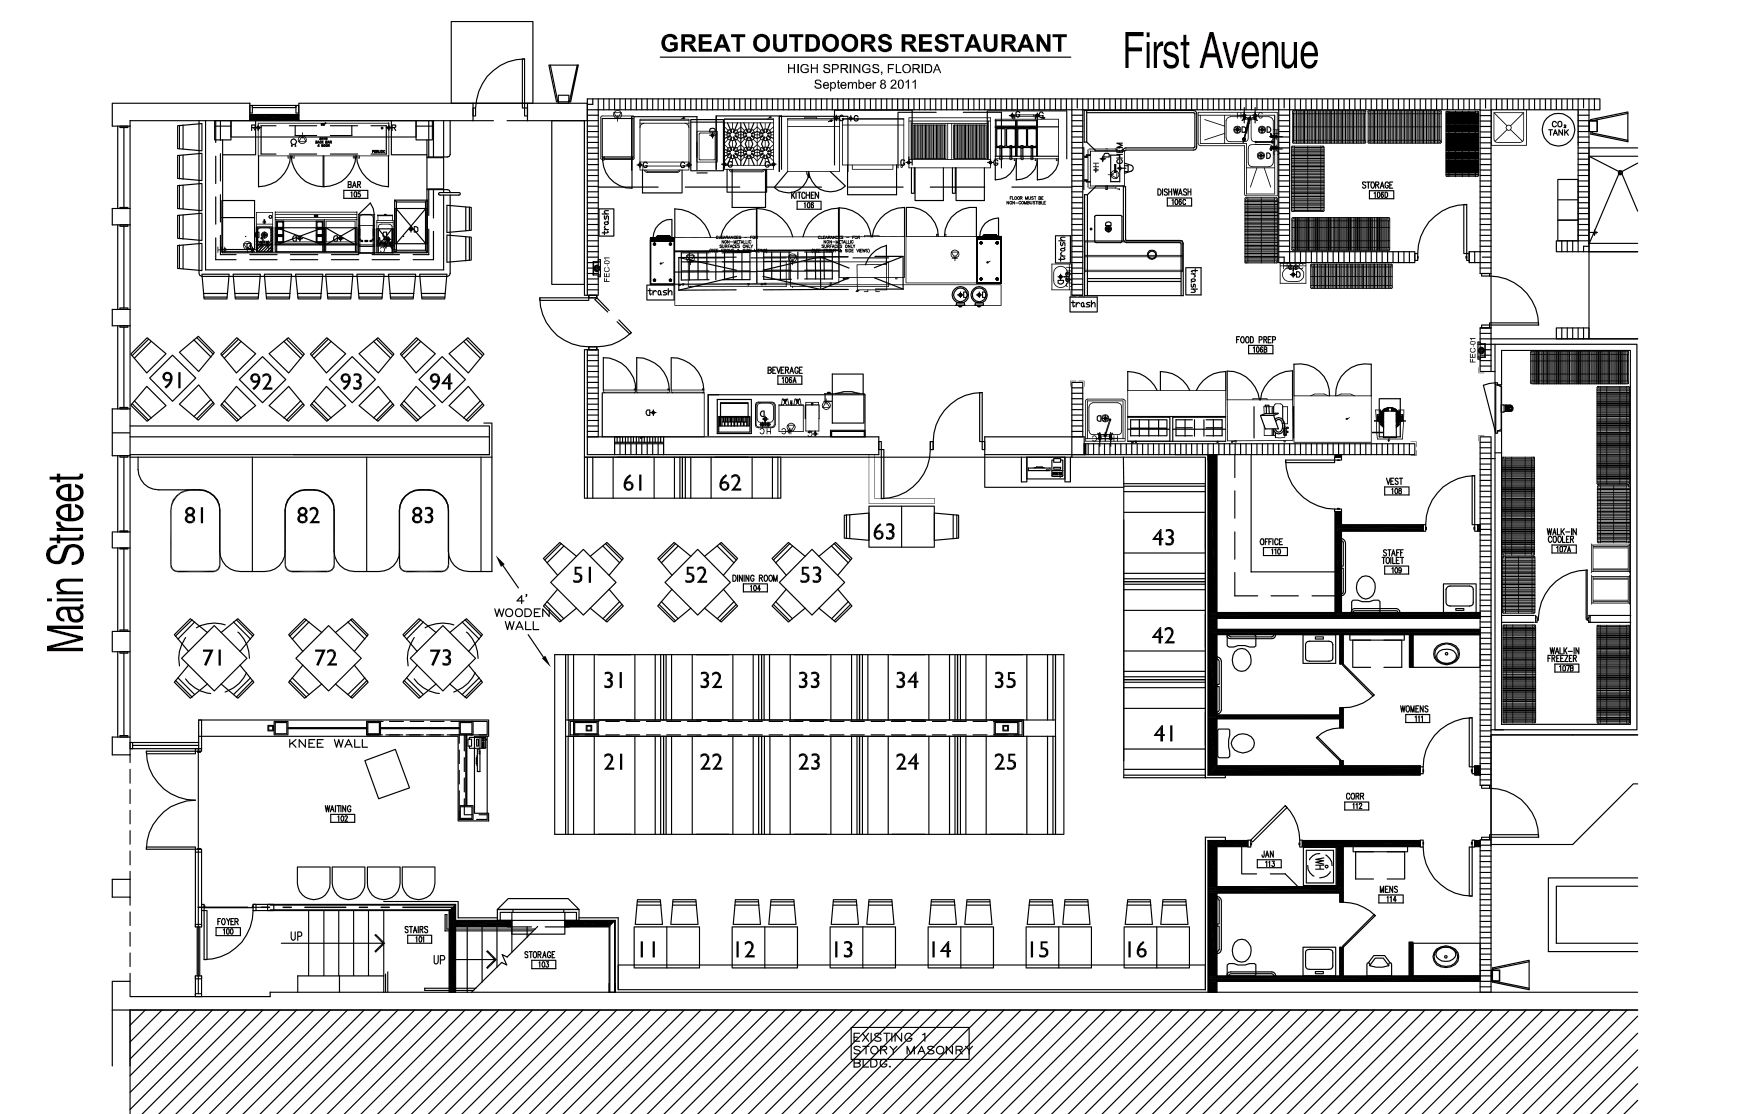 Restaurant interior design floor plan tìm với google